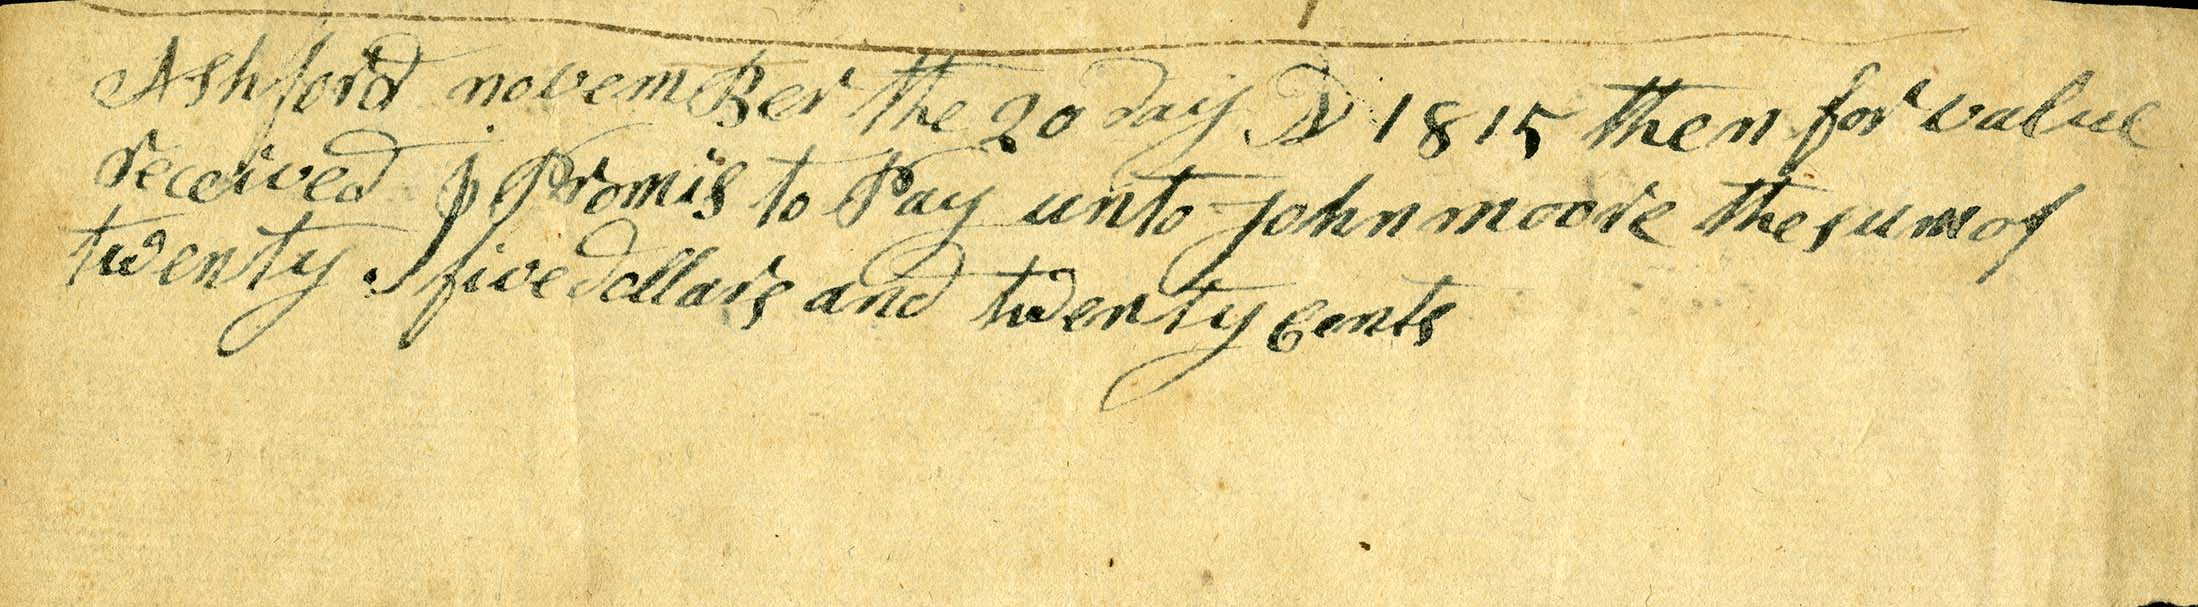 Promissory note from 1815. From the Fitts Family Papers